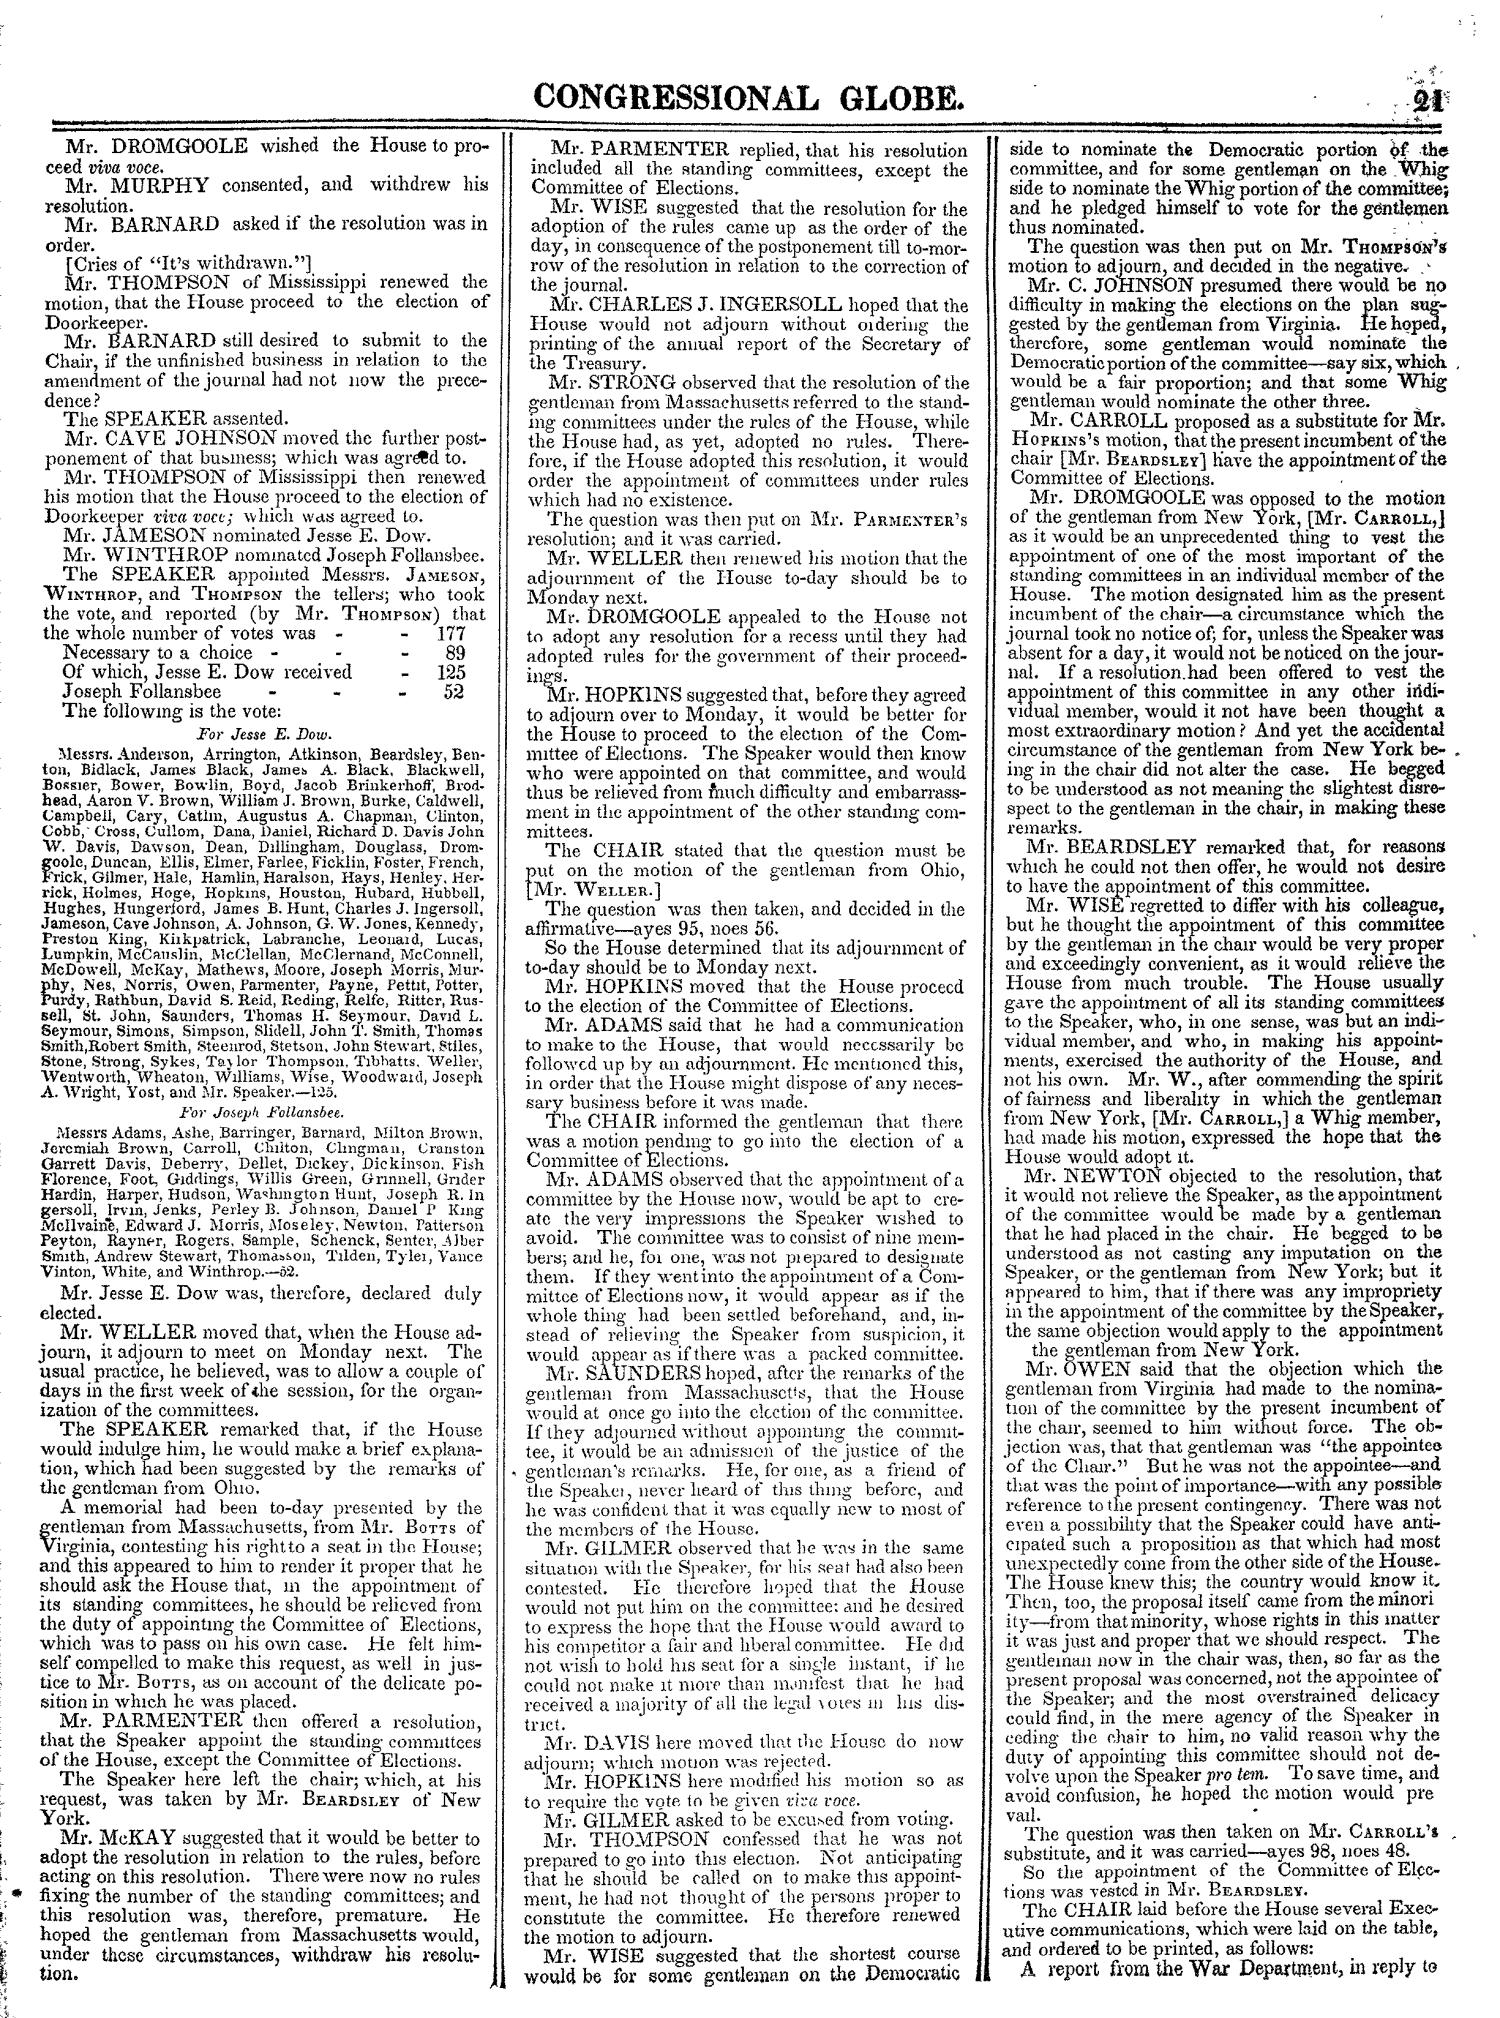 The Congressional Globe, Volume 13, Part 1: Twenty-Eighth Congress, First Session                                                                                                      21